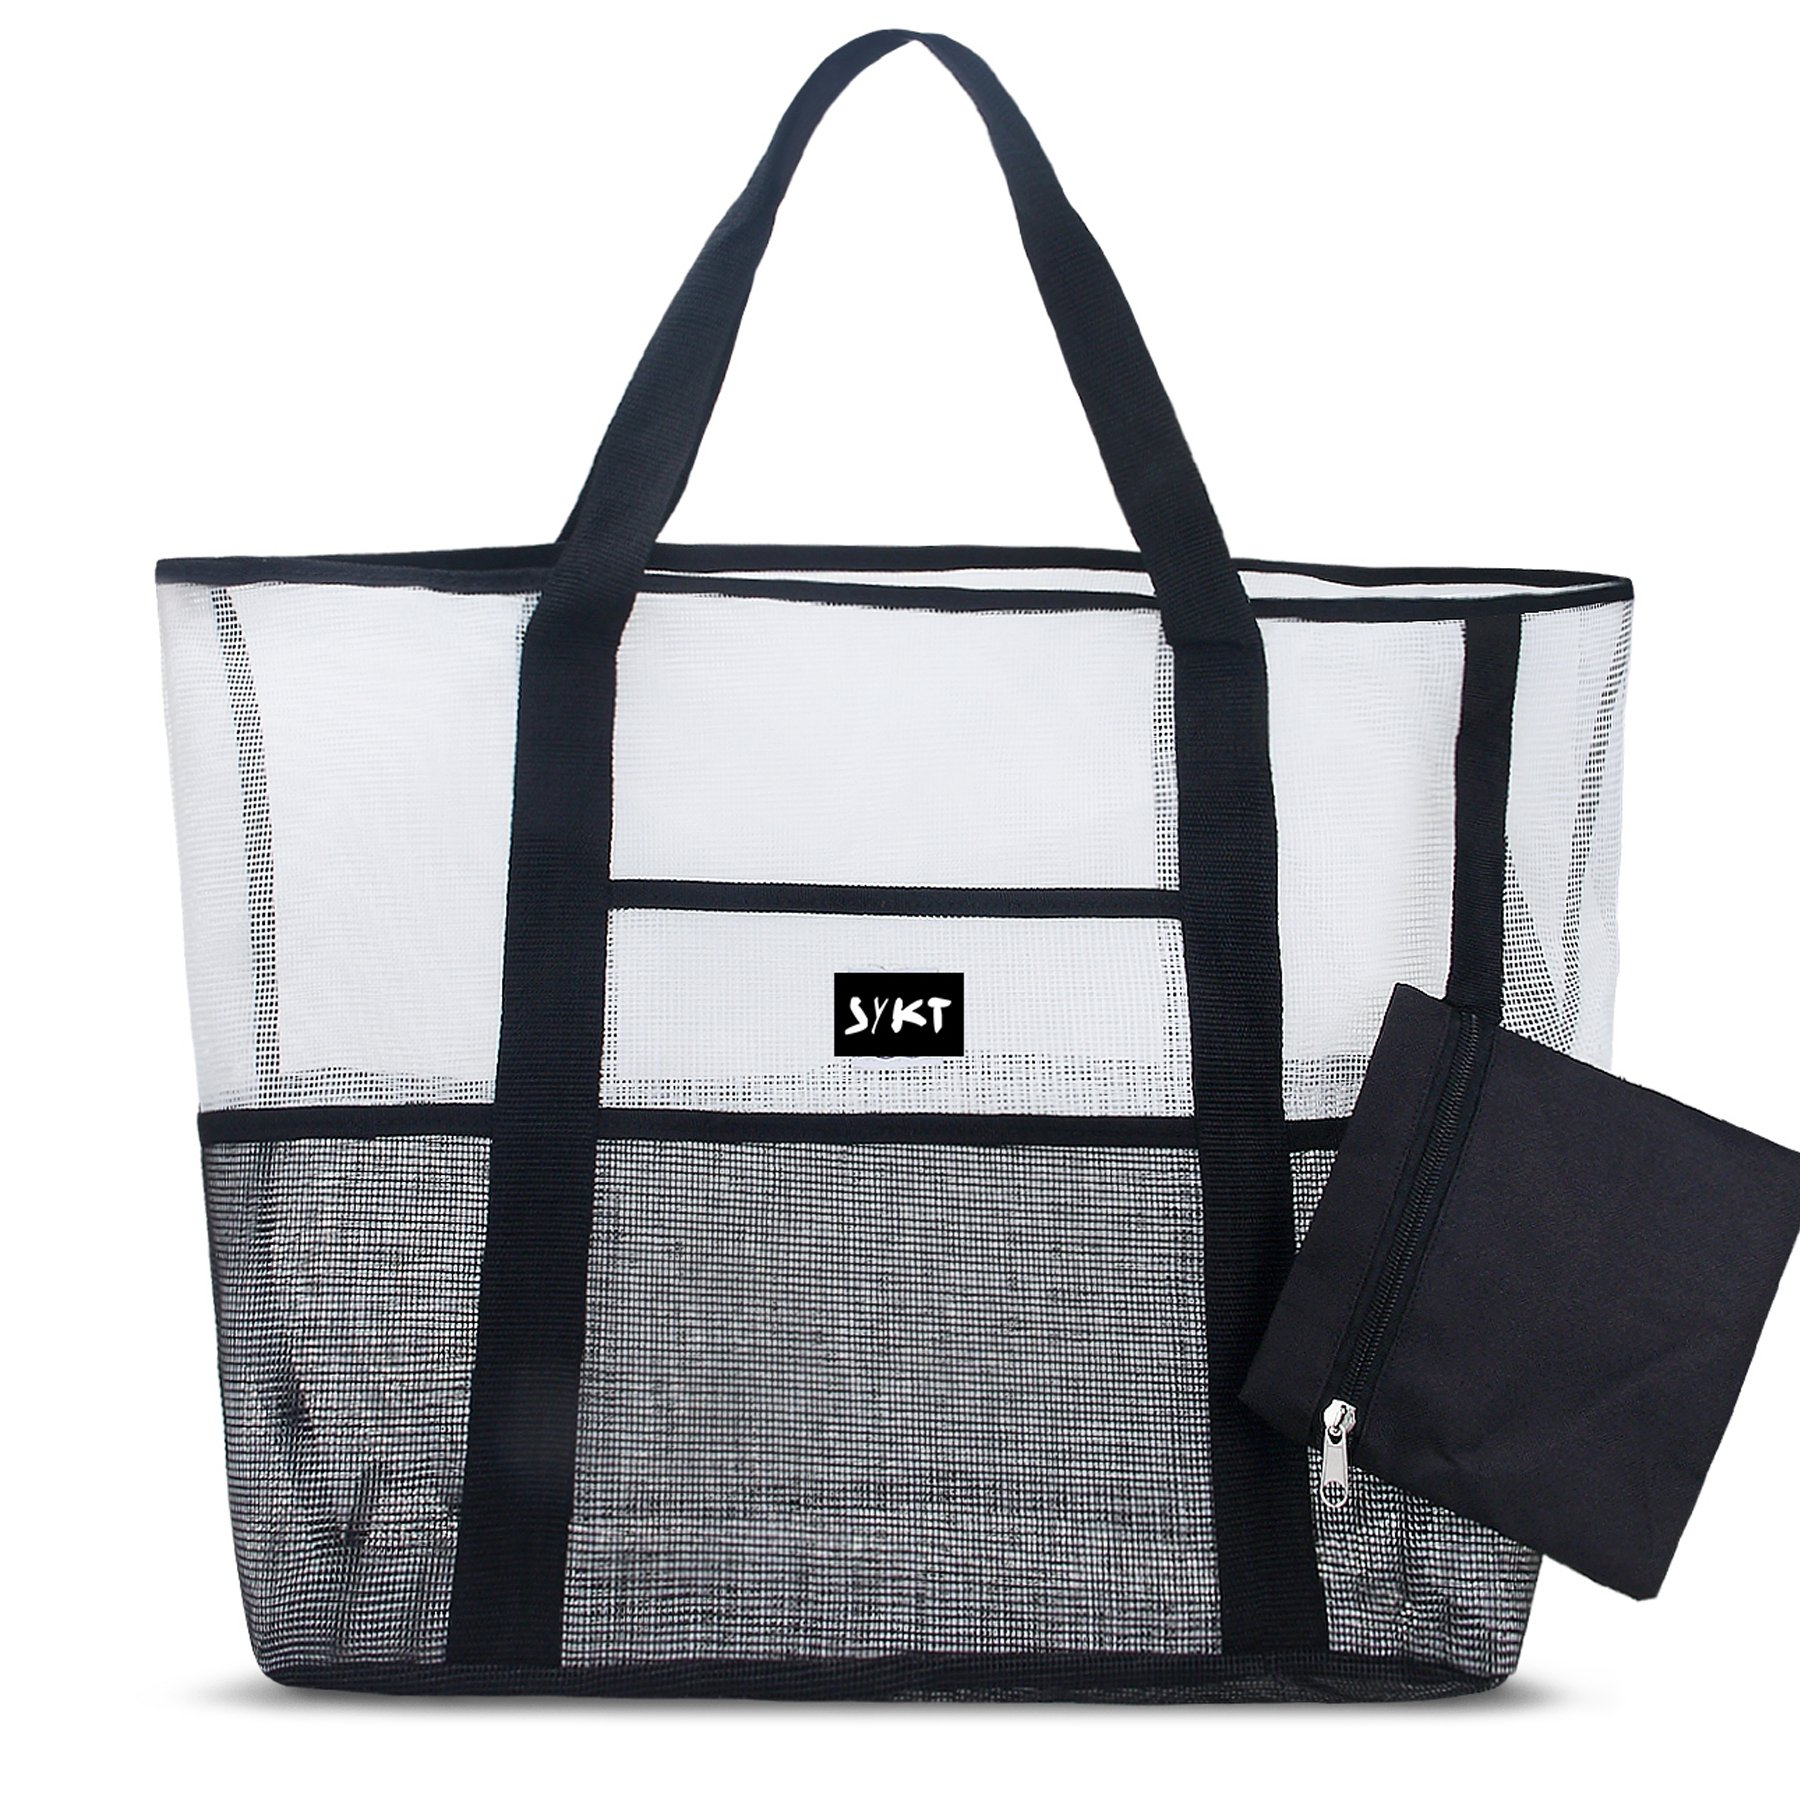 Mesh Large Tote Bag Reusable Grocery Bags Utility Bag Collapsible Heavy Duty Shopping Bag